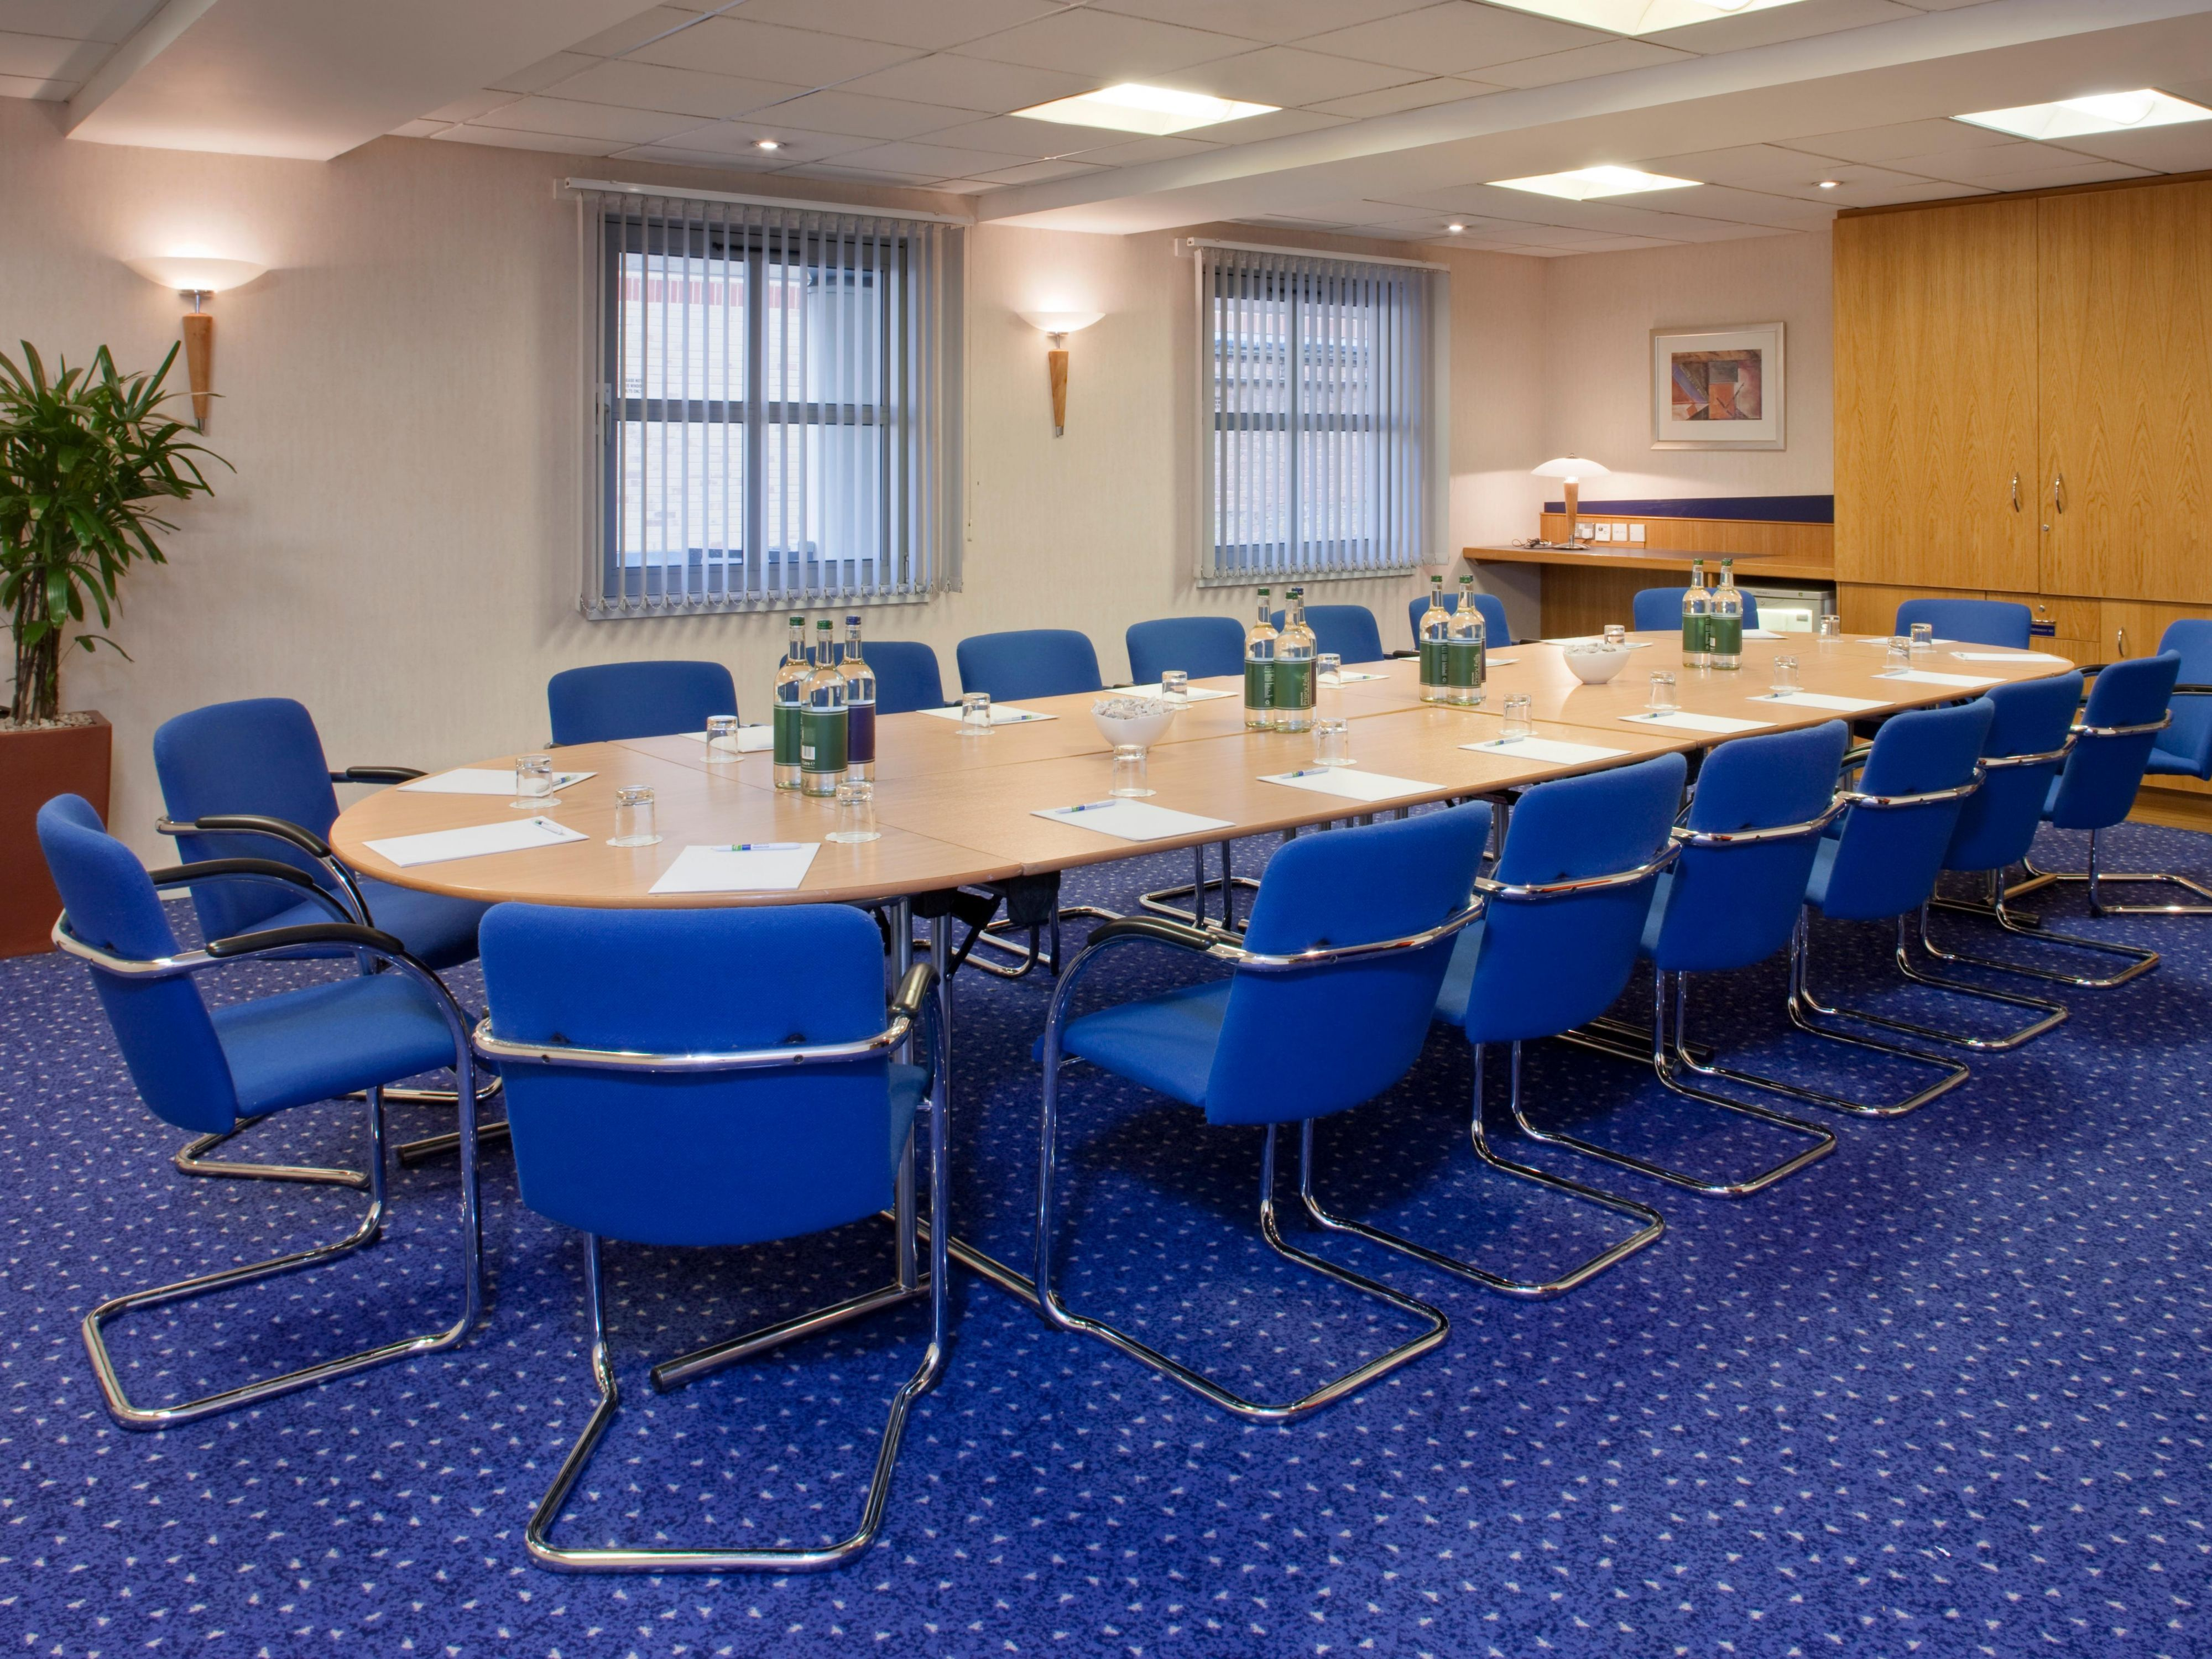 Meeting rooms for up to 35 delegates at our Hammersmith hotel